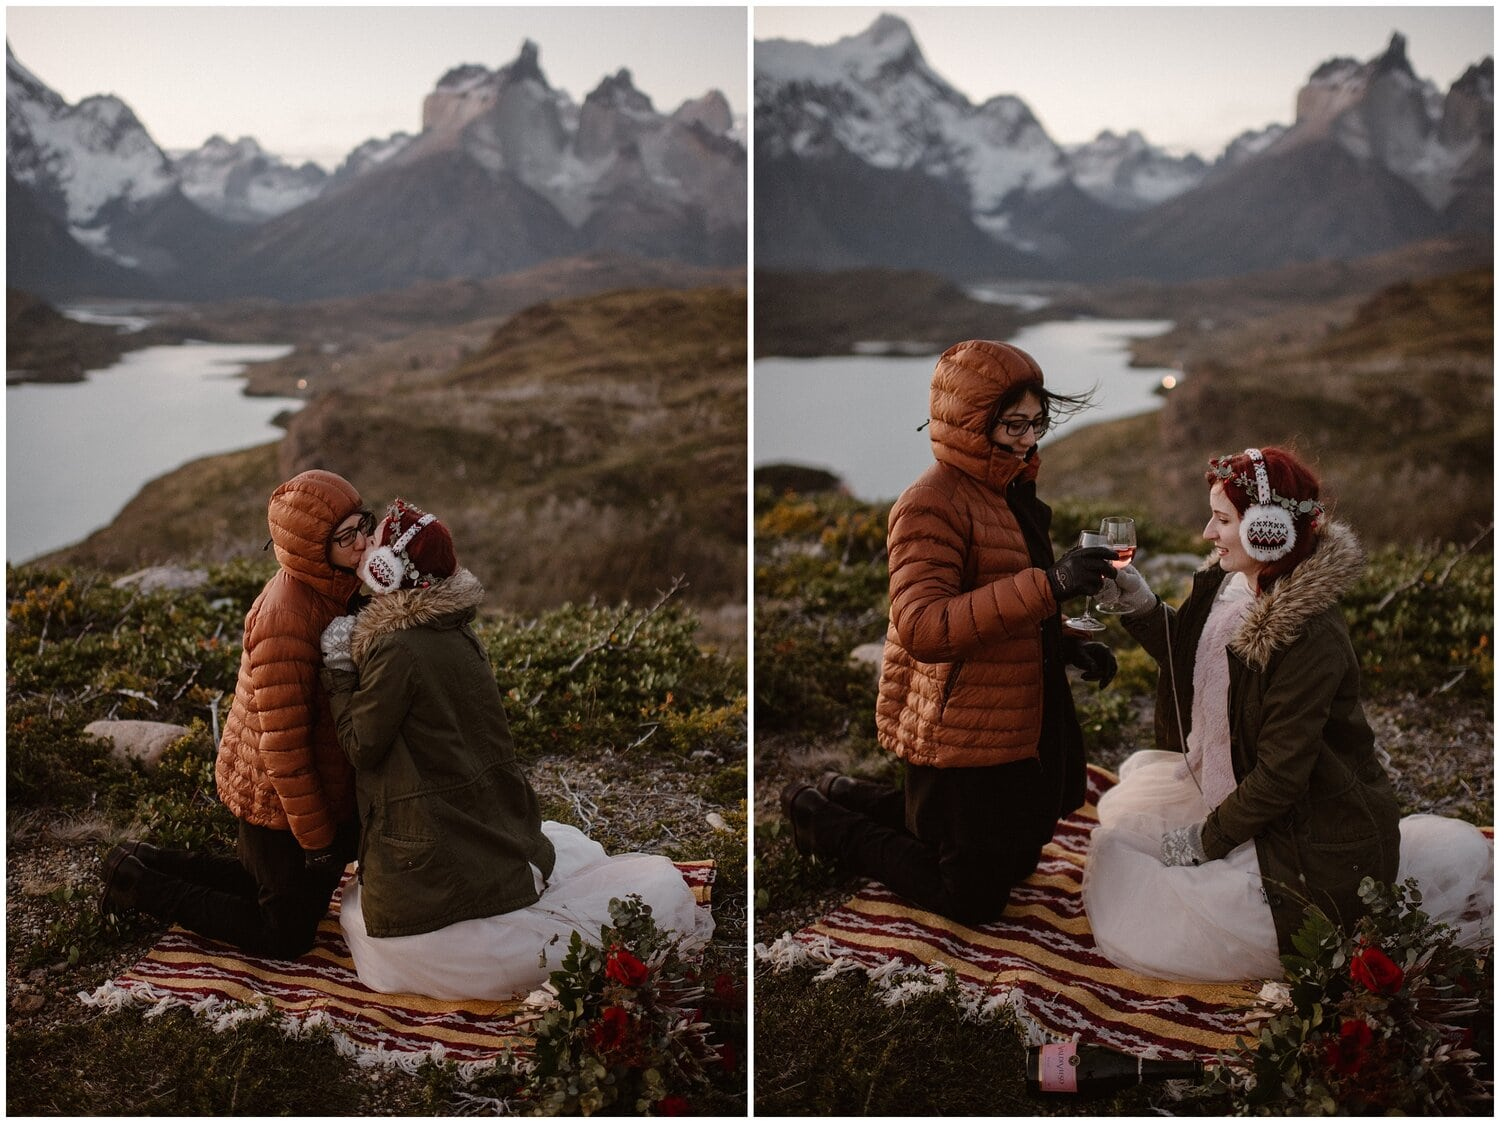 Couple drinks wine at a picnic on their wedding day.